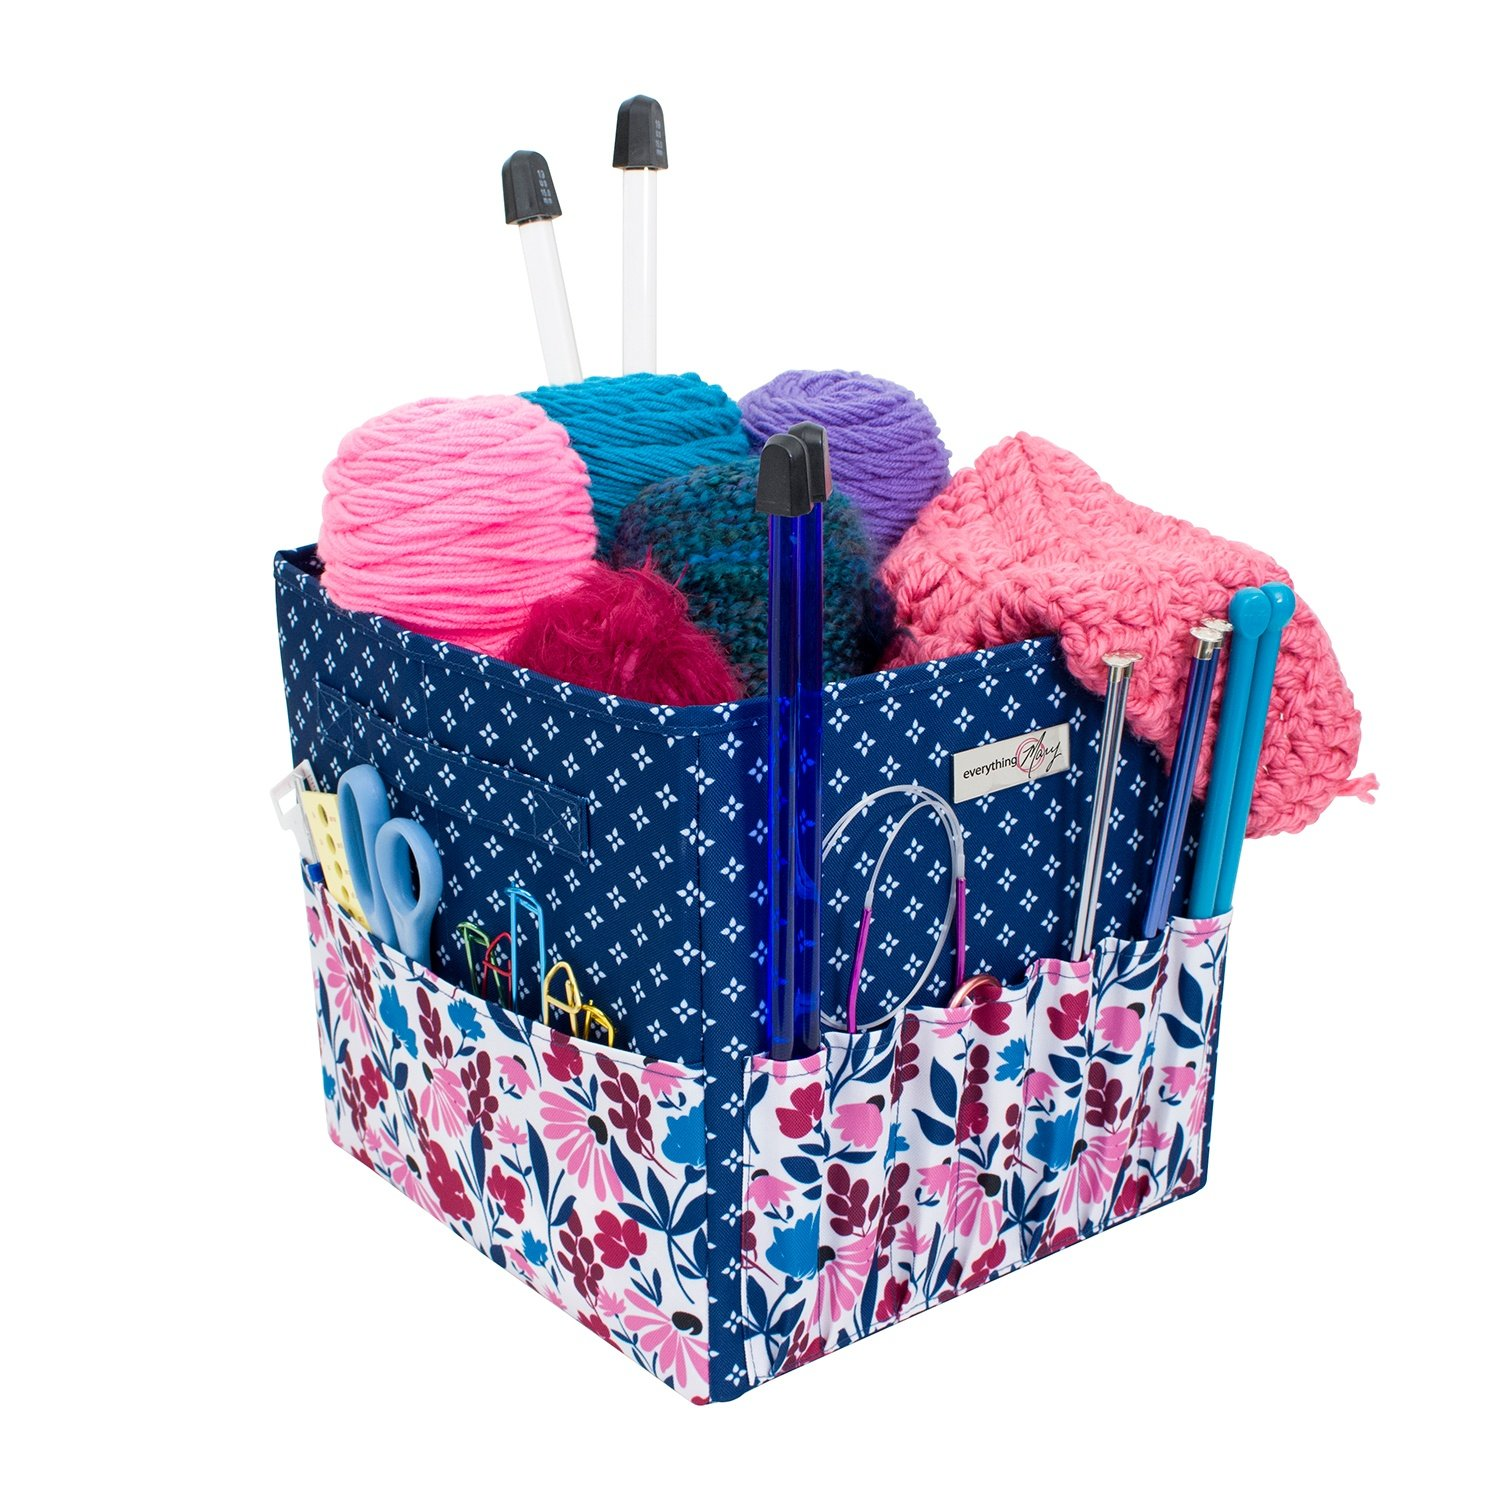 Everything Mary Square Yarn Project Caddy Organizer Storage Tote - Large Premium Case for Knitting, Yarn, Crotchet - Yarn & Notions Organization - Tangle Free Yarn Caddy Organizer for Tools & Travel